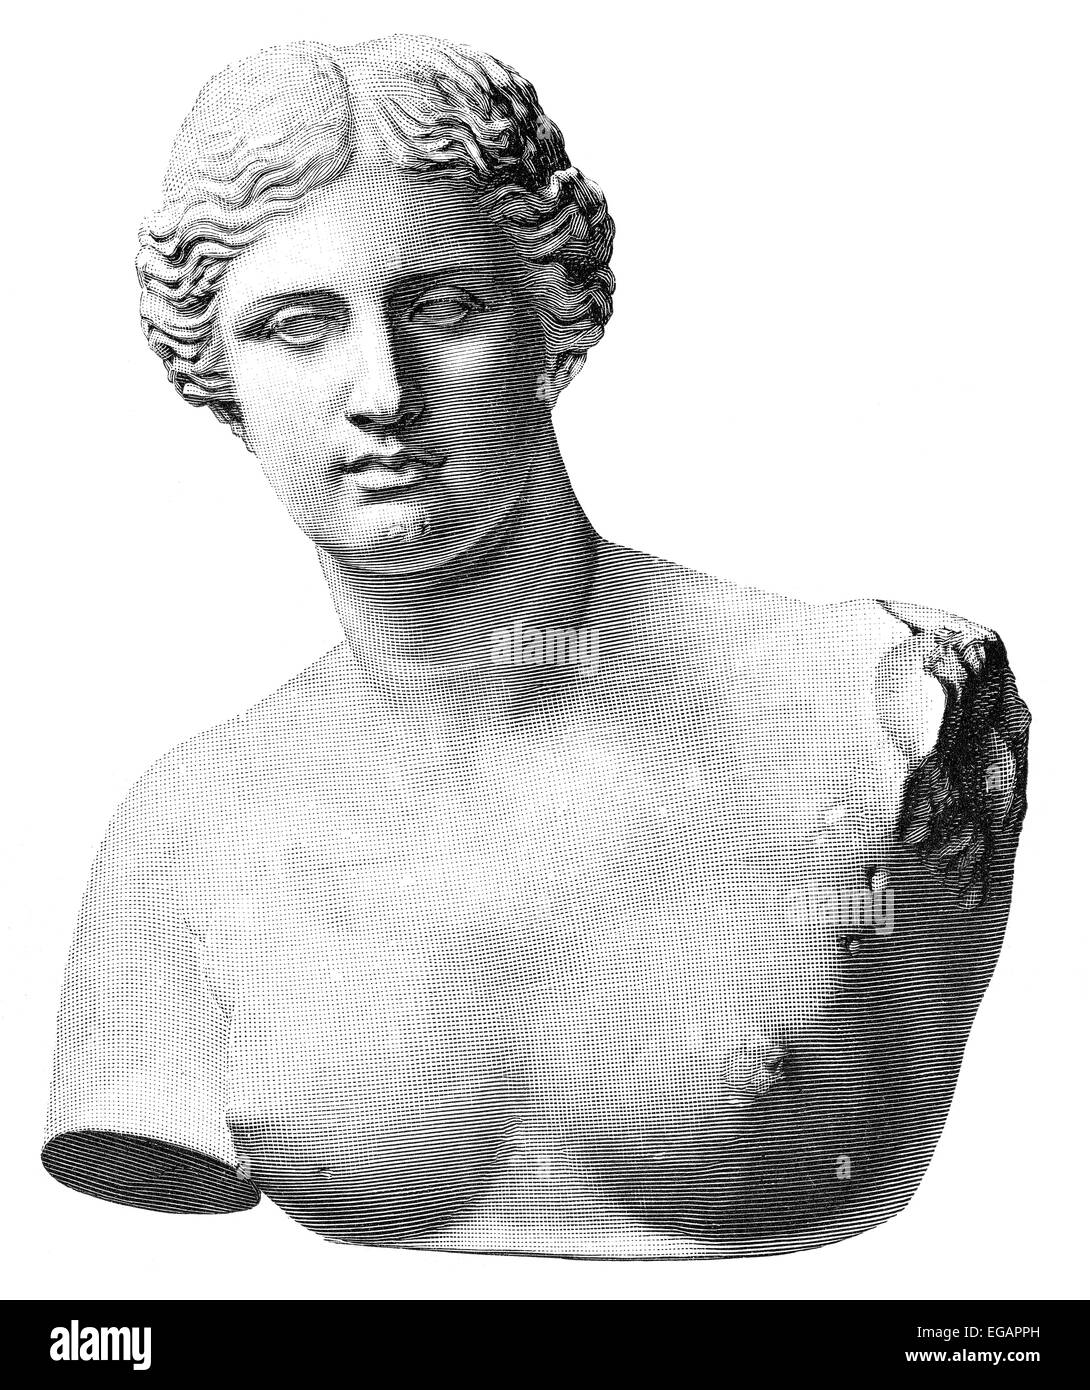 Aphrodite of Milos or Venus de Milo, an ancient Greek statue, - Stock Image